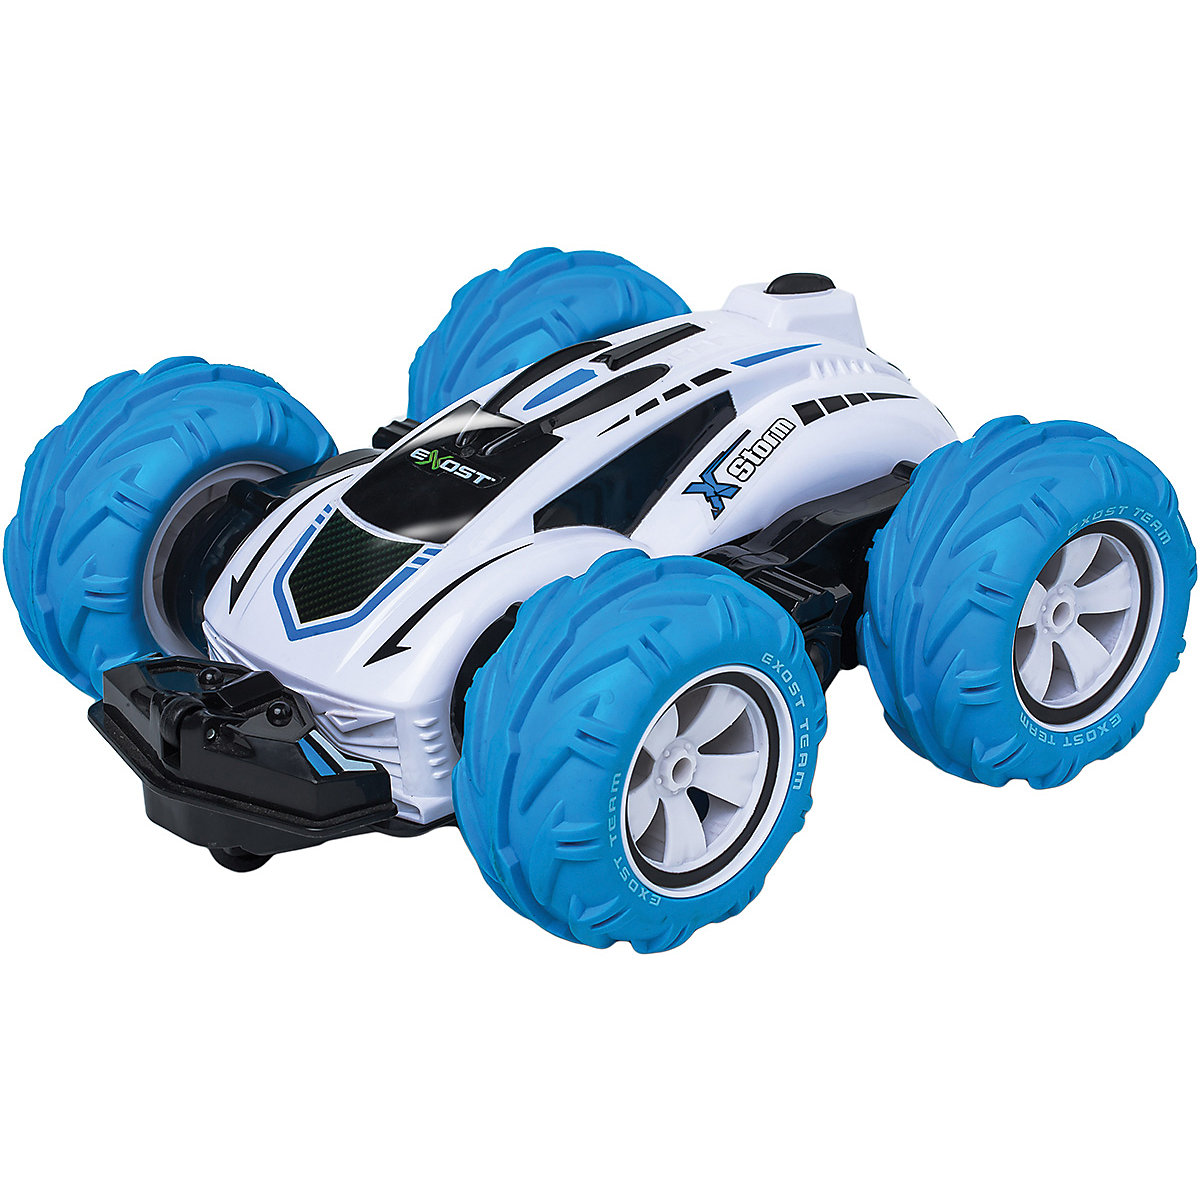 Silverlit RC Cars 10077751 Remote Control Toys radio-controlled toy games children Kids car